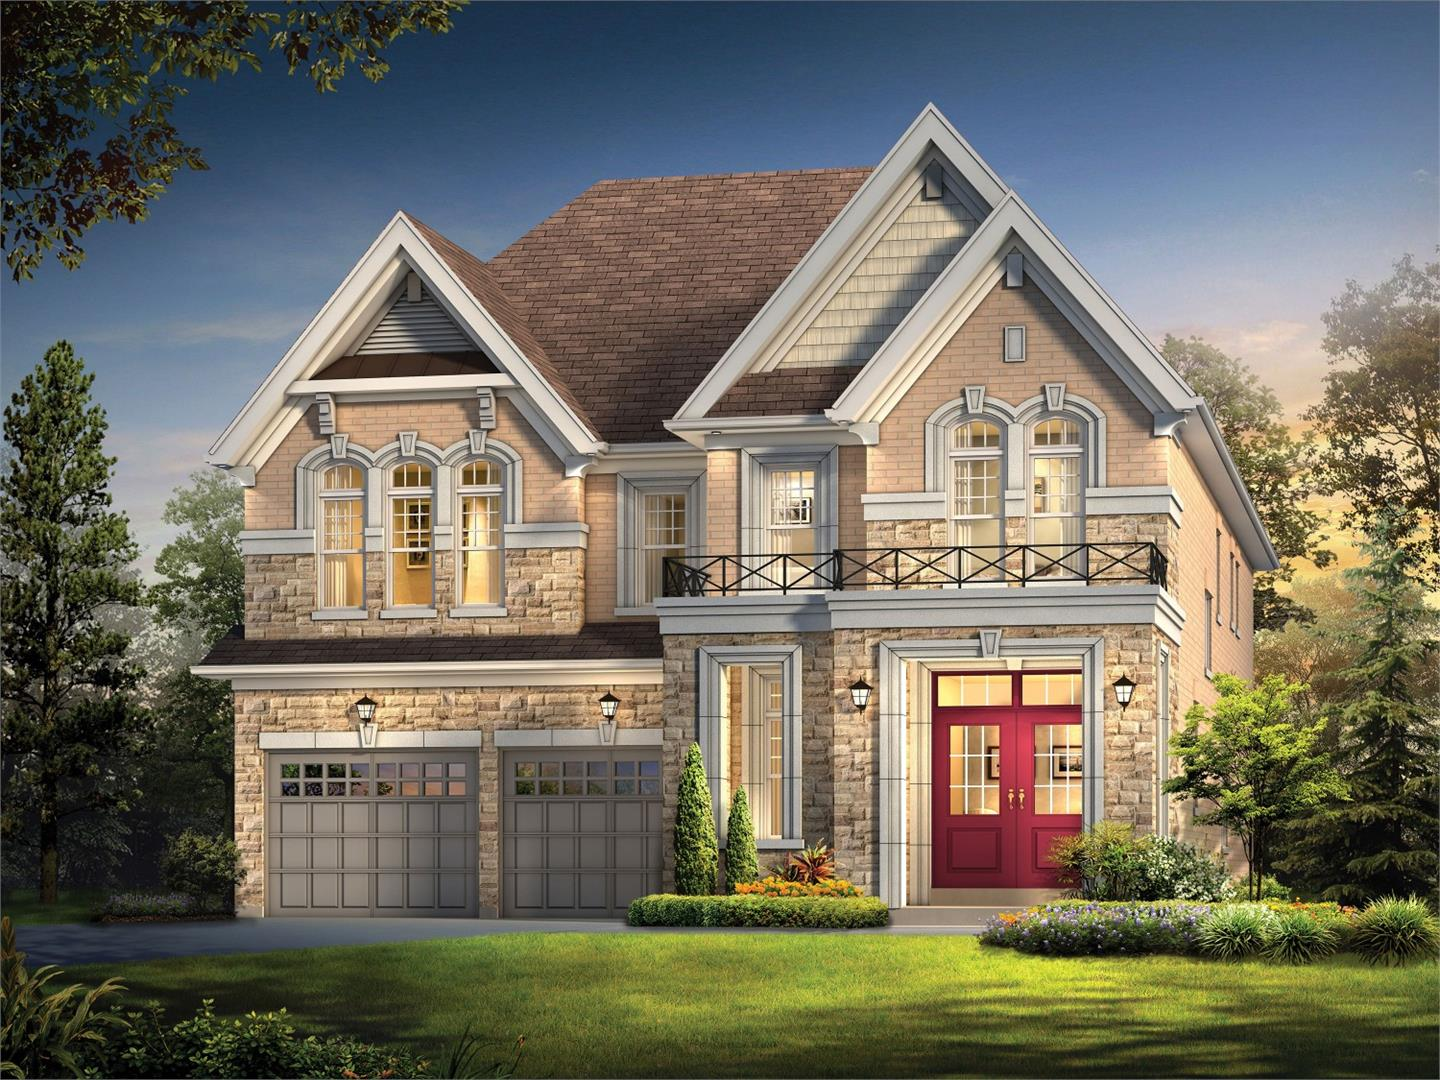 Find Out The Brand New House For Sale In Brampton